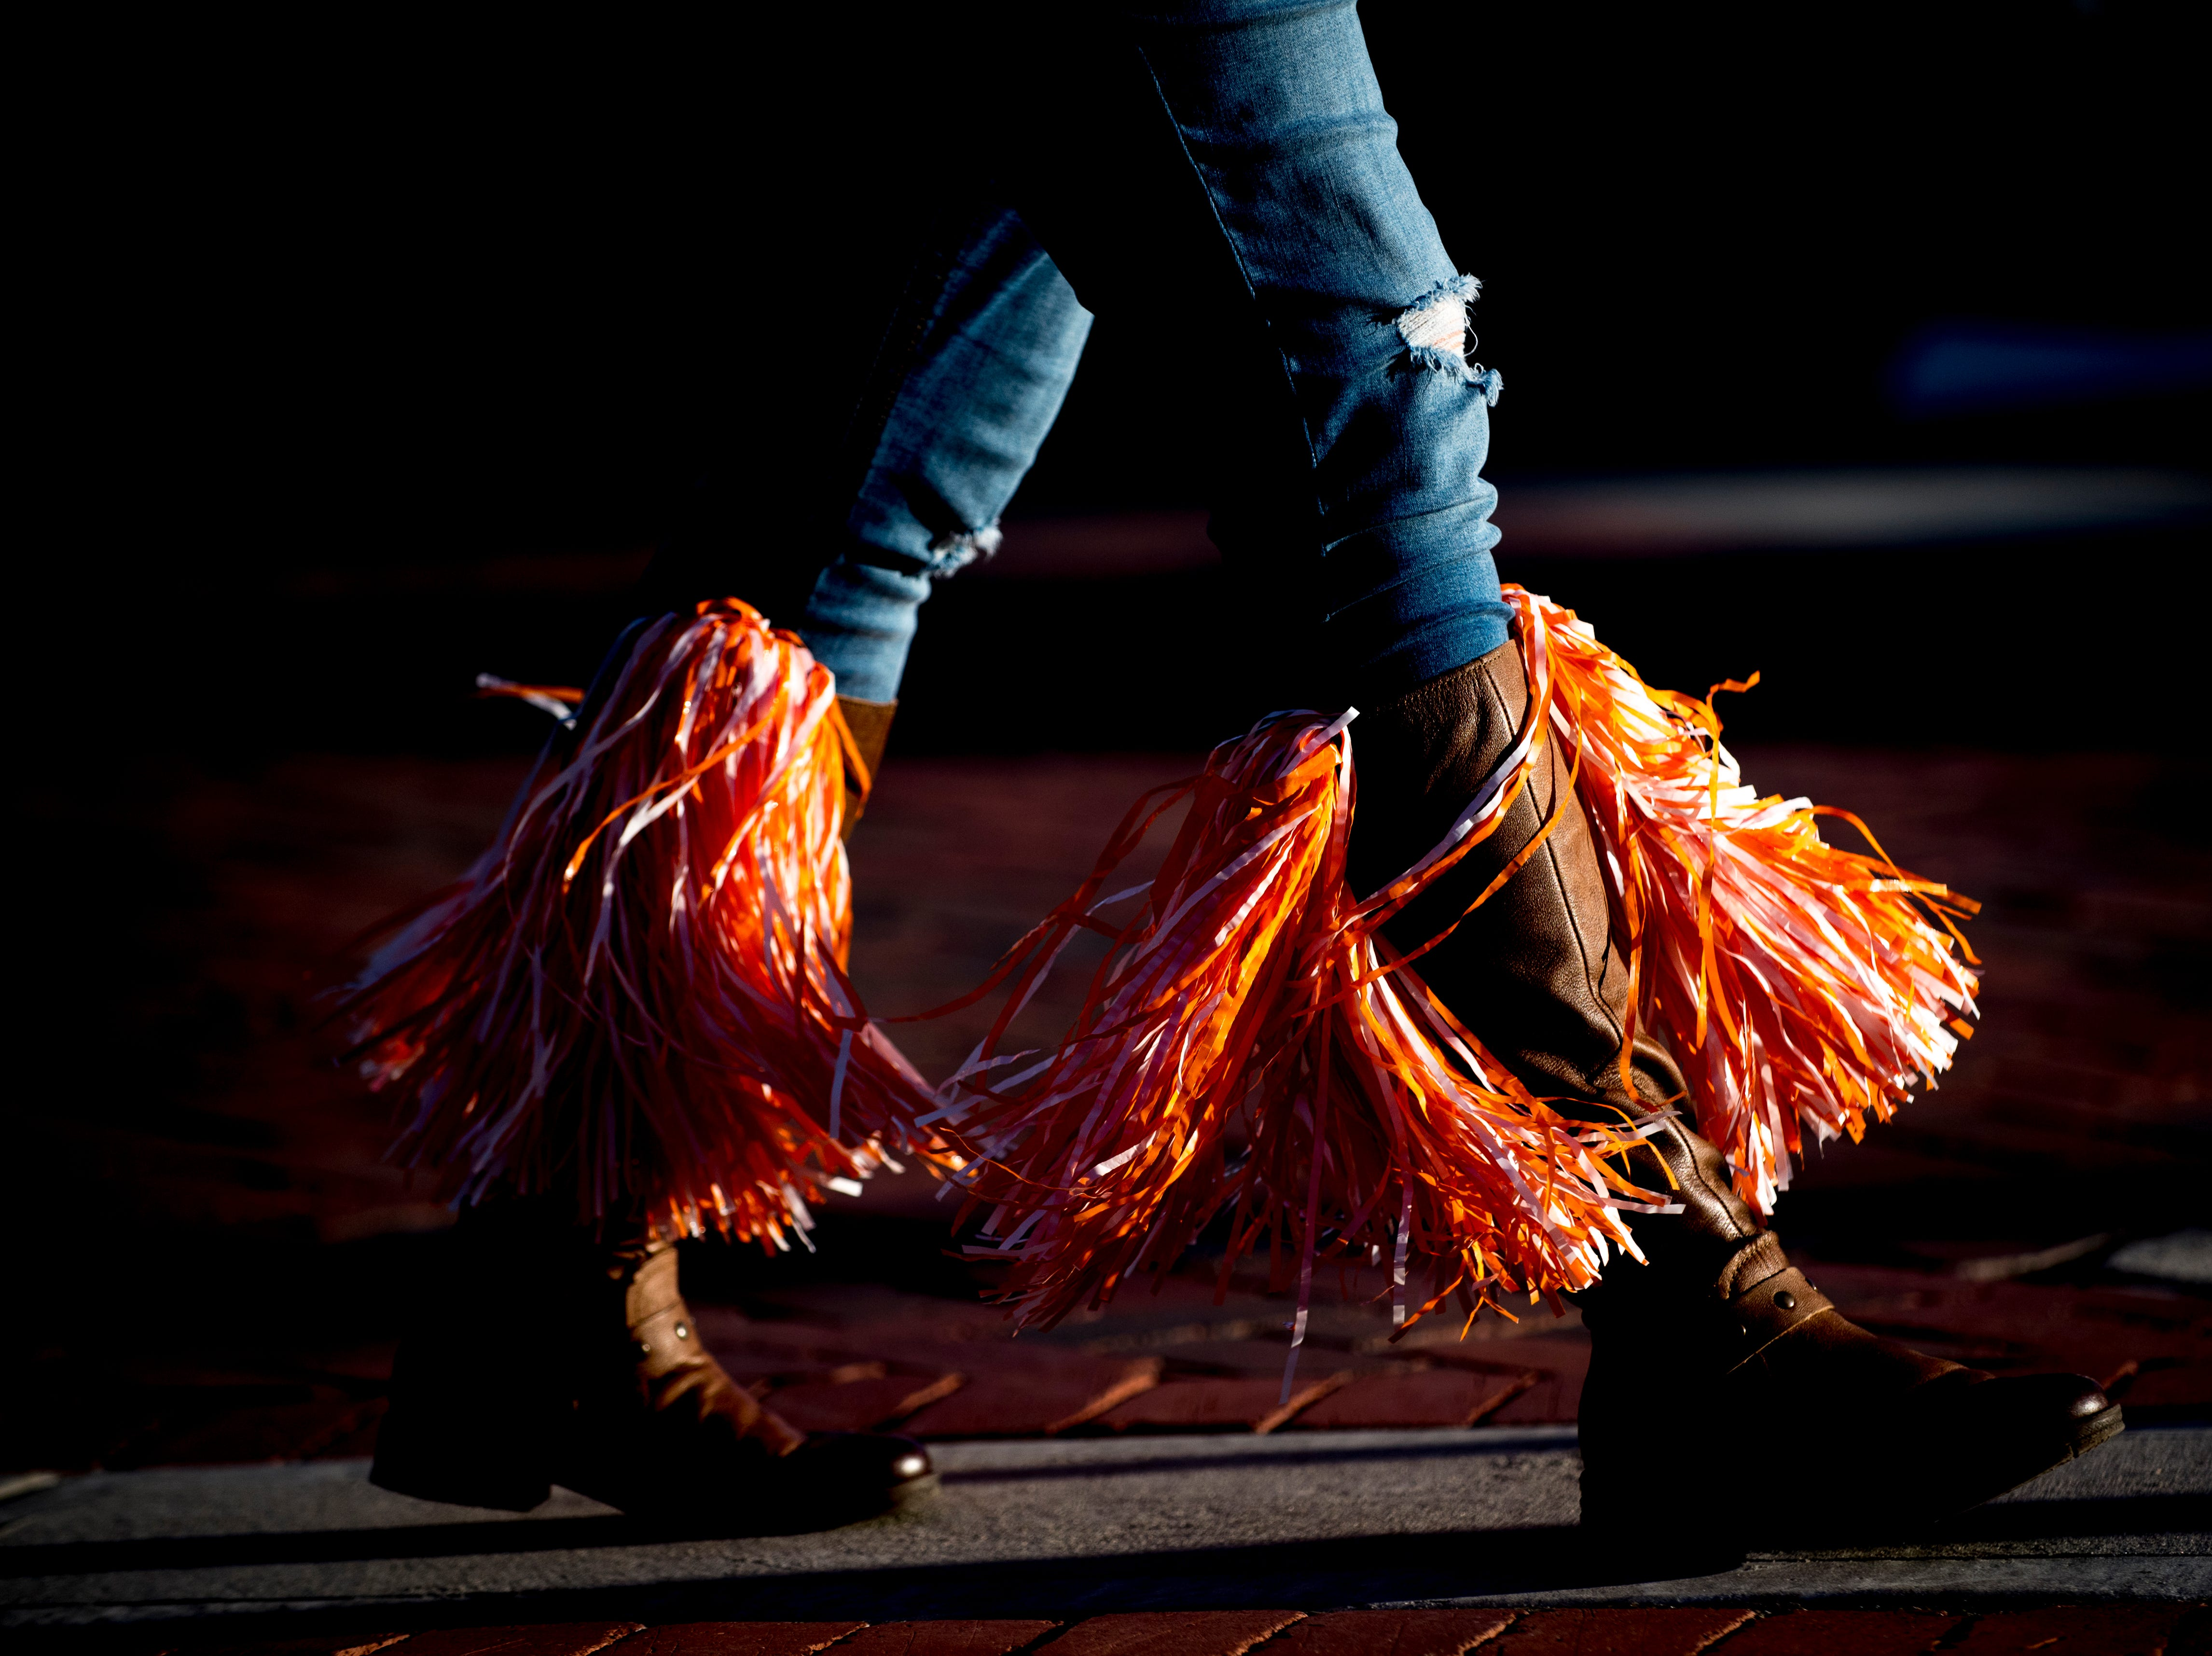 Shanon Estep, of Knoxville, wears pom poms in her boots before a game between Tennessee and South Carolina at Williams-Brice Stadium in Columbia, South Carolina on Saturday, October 27, 2018.